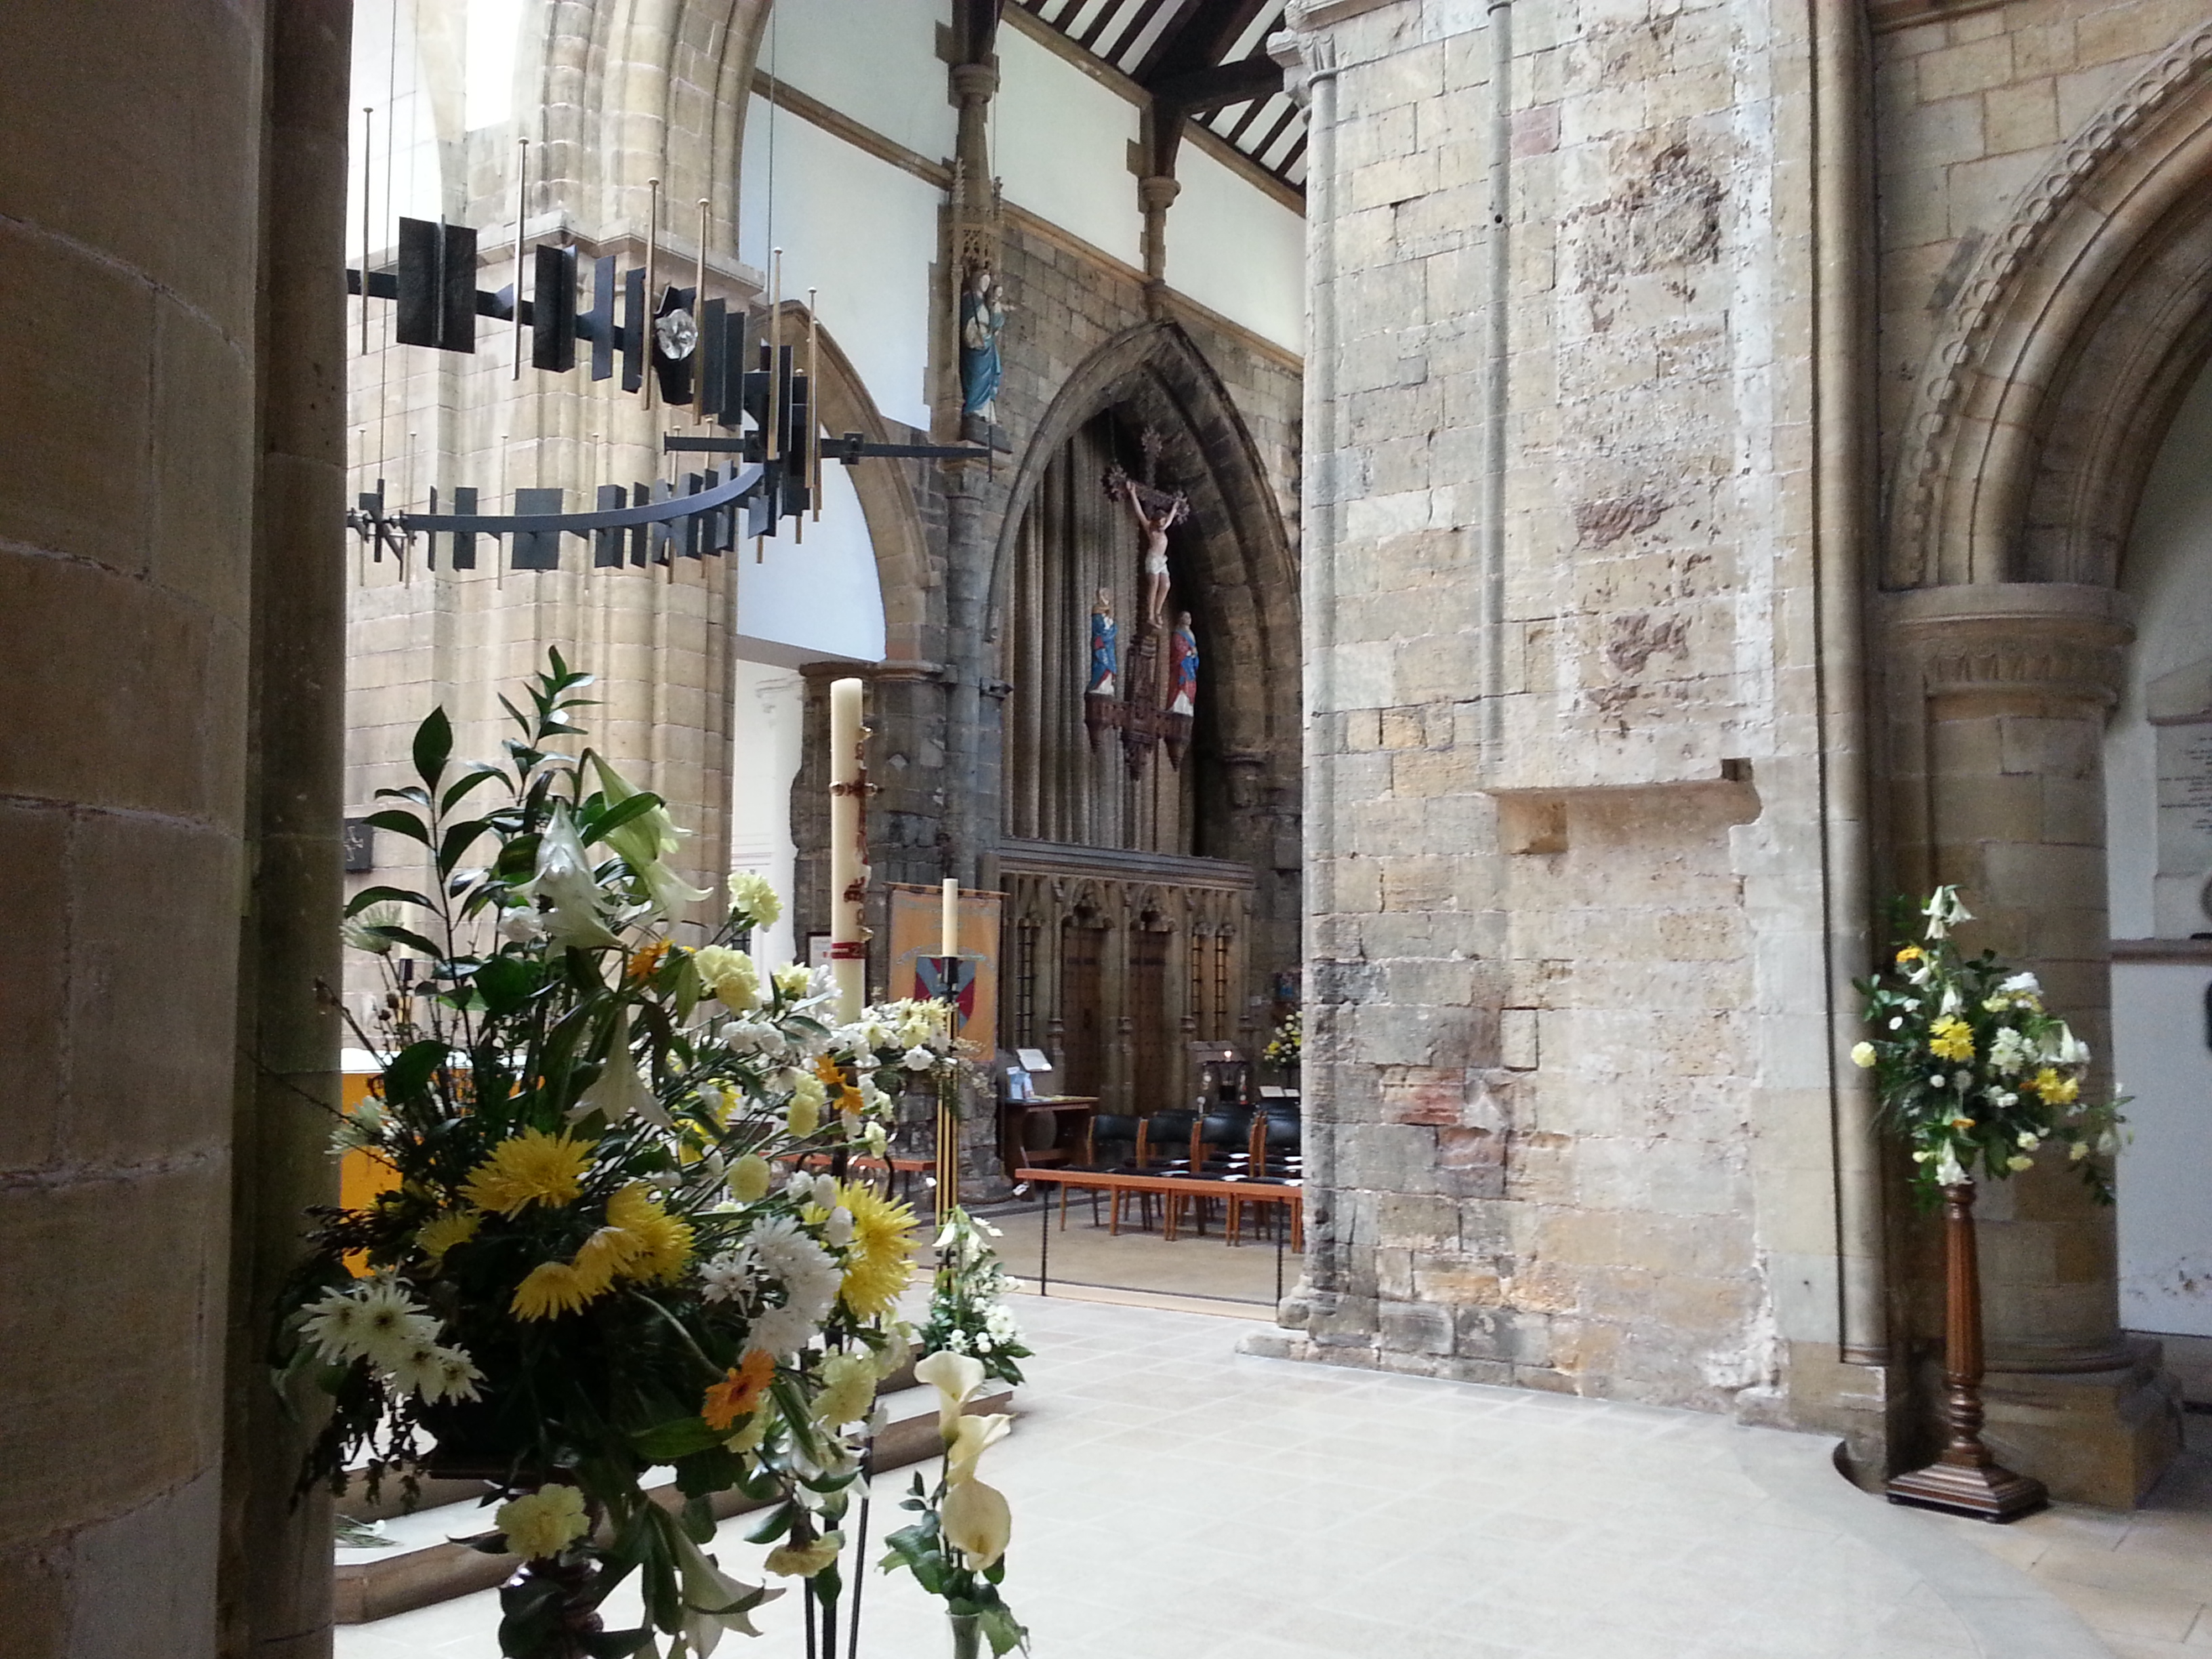 Servers view of the Lady Chapel